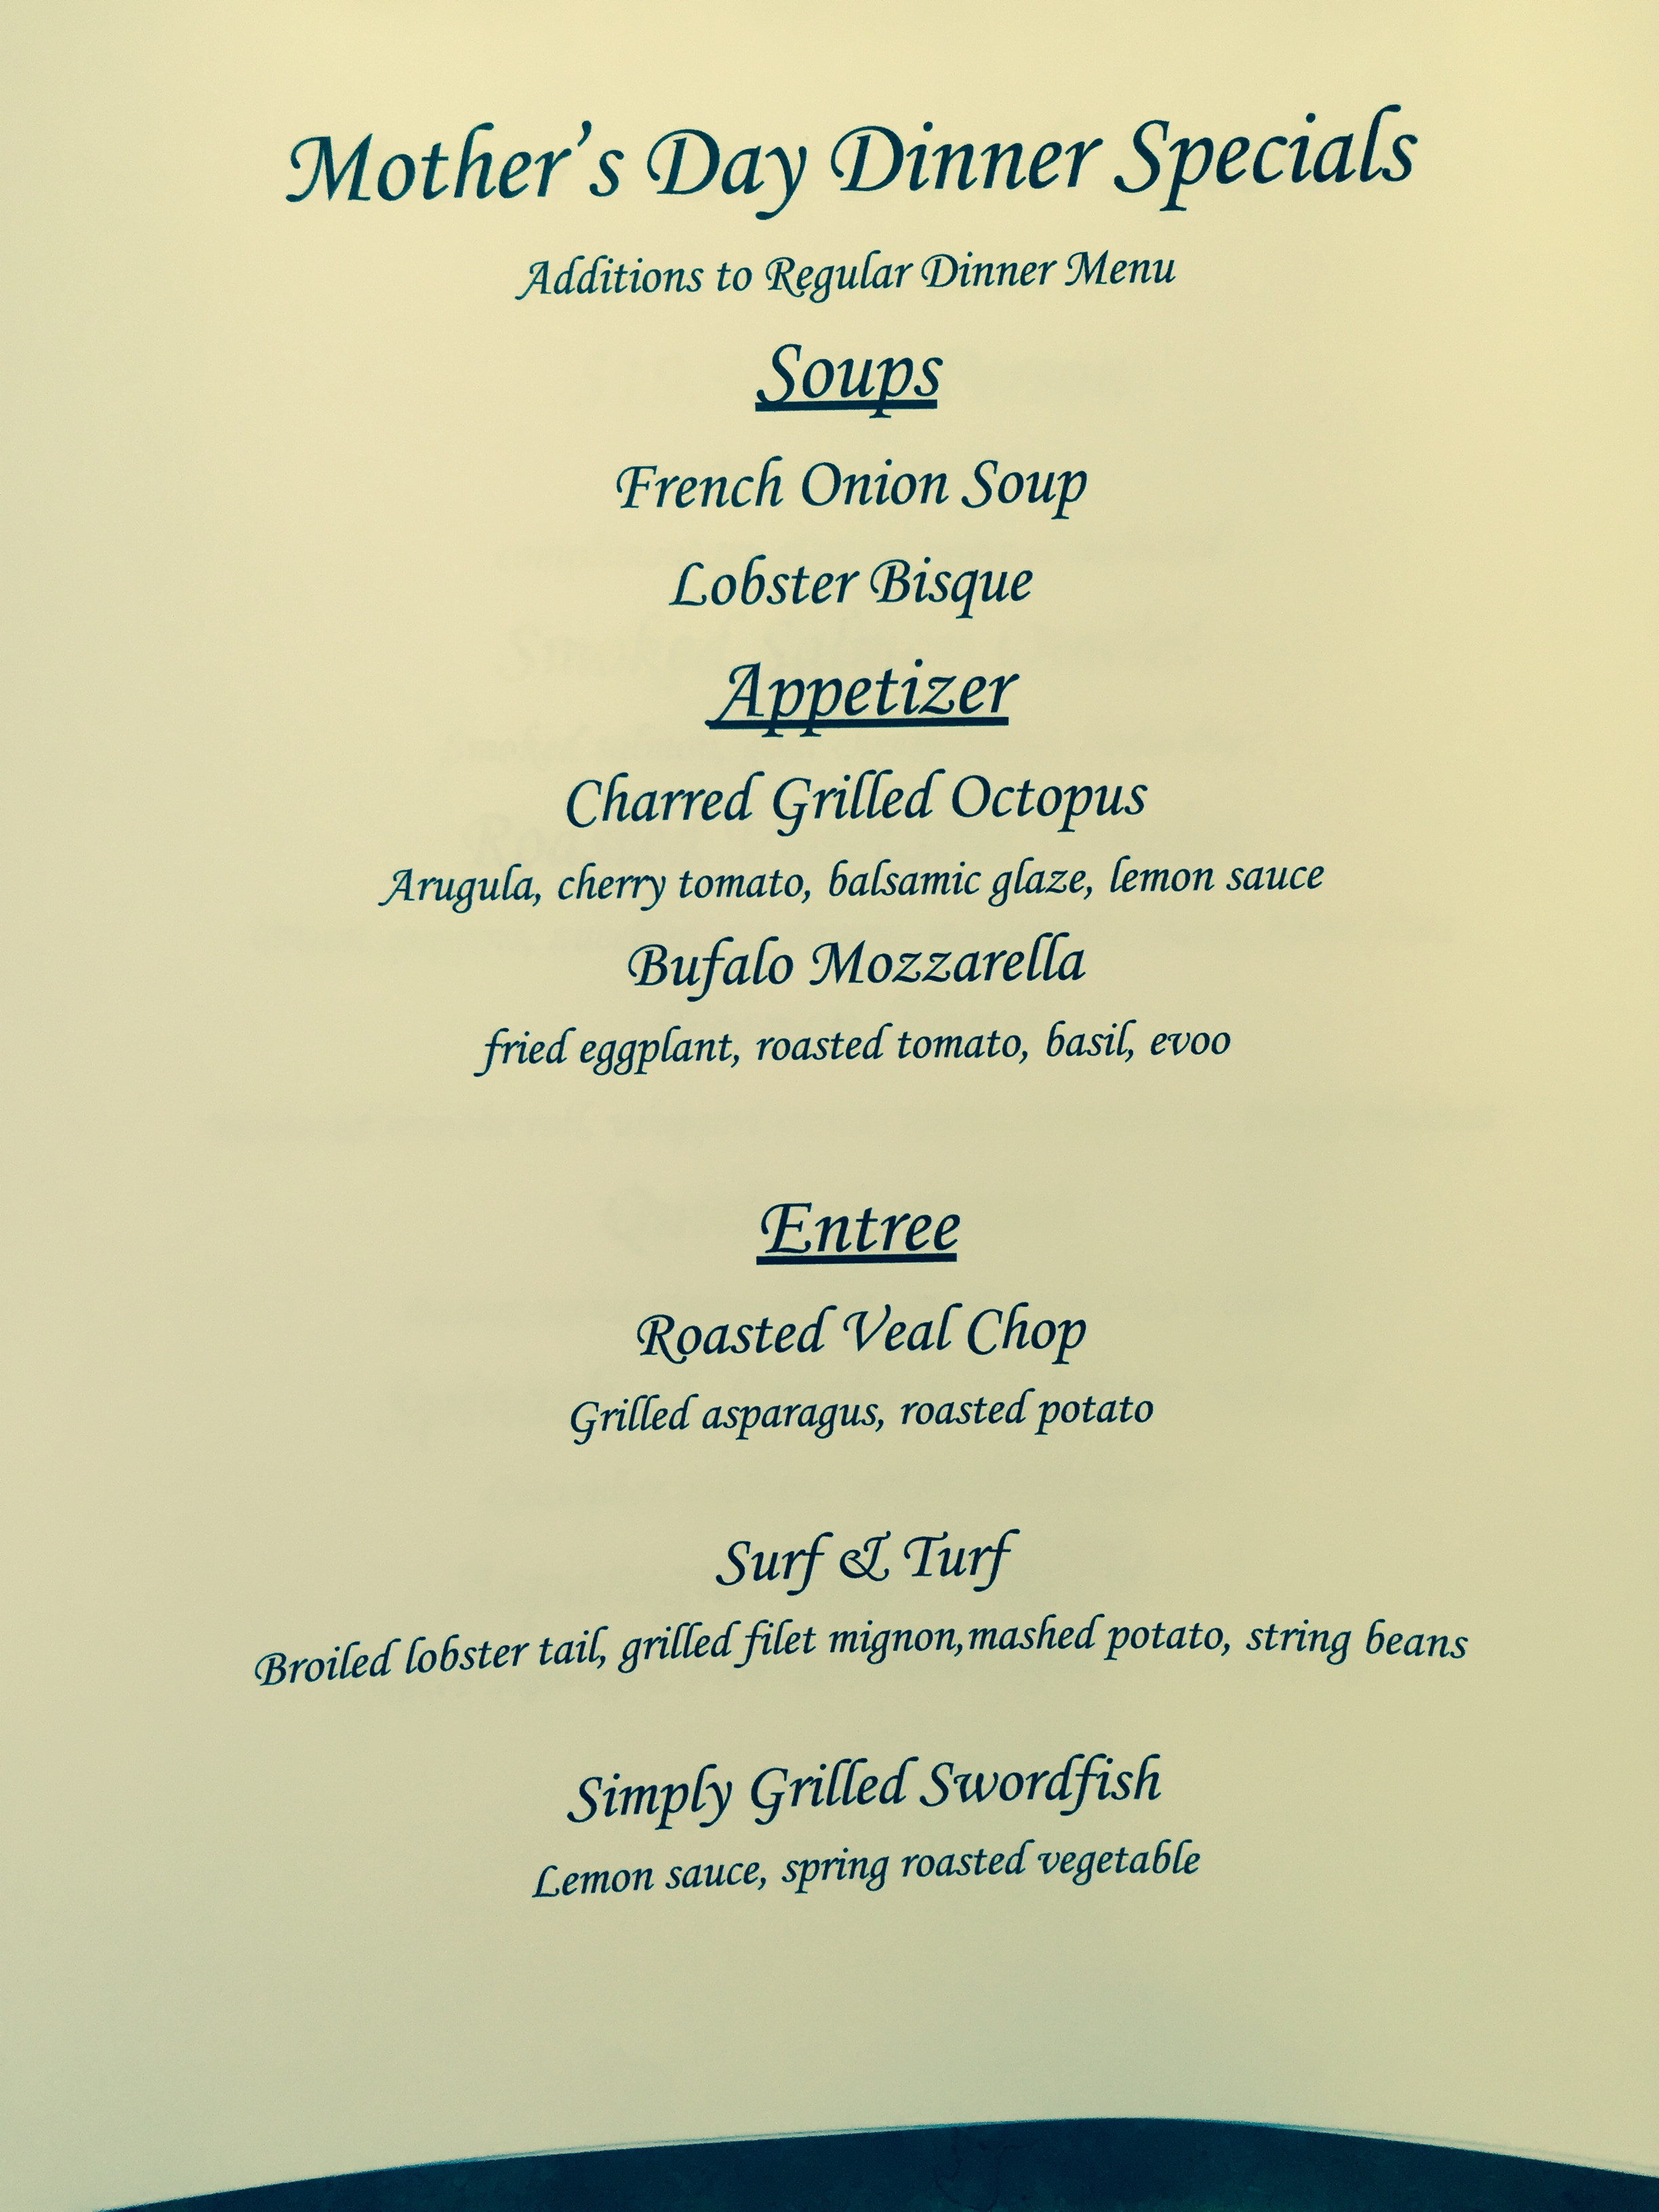 Mothers Day Dinner Menus  Morther's Day Dinner Specials